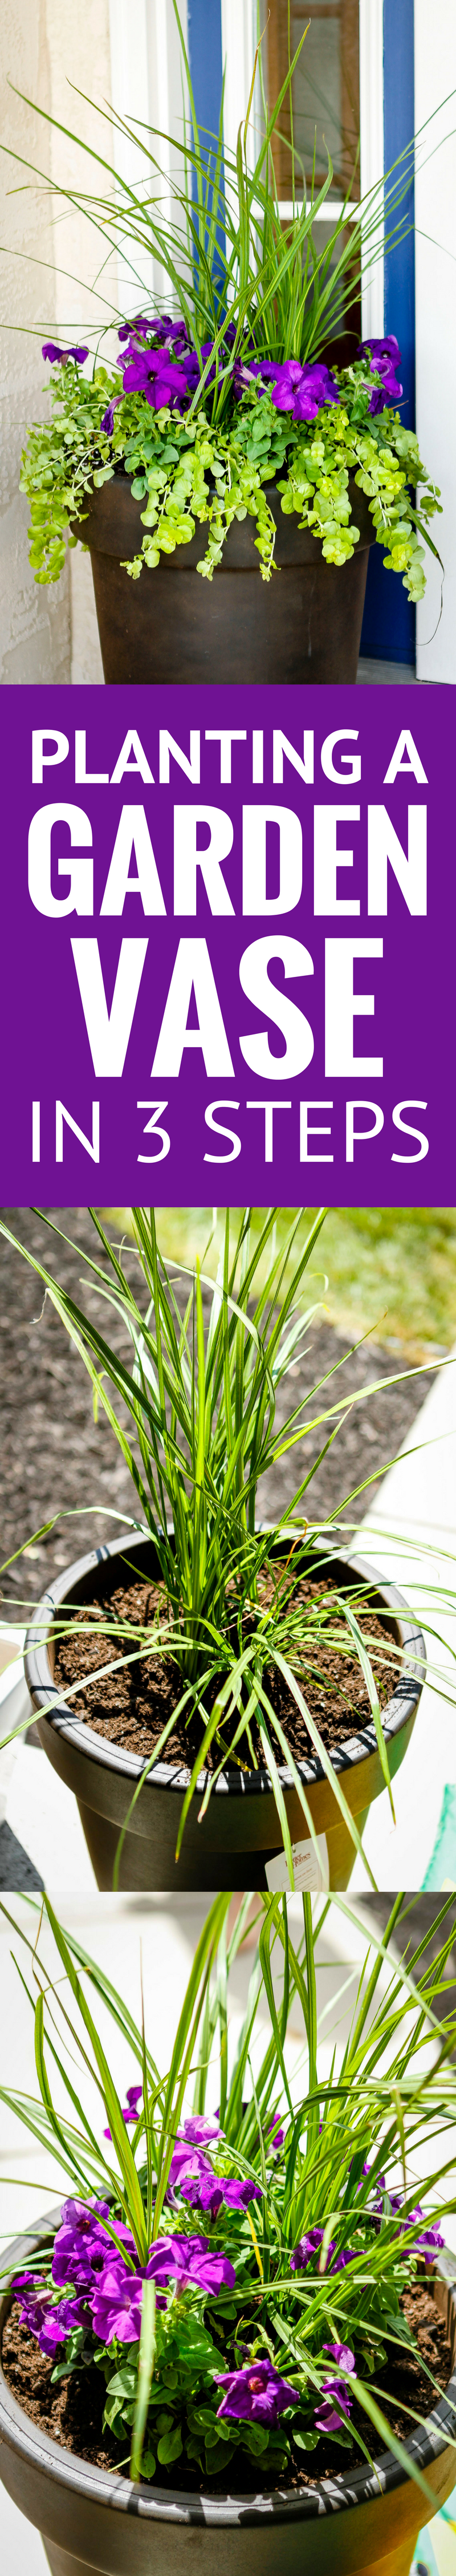 3 easy steps to planting a garden vase that will be a beautiful focal point  for your front porch  patio or deck  how to plant flowers in large planters. Planting a Perfectly Proportioned Garden Vase    3 easy steps to